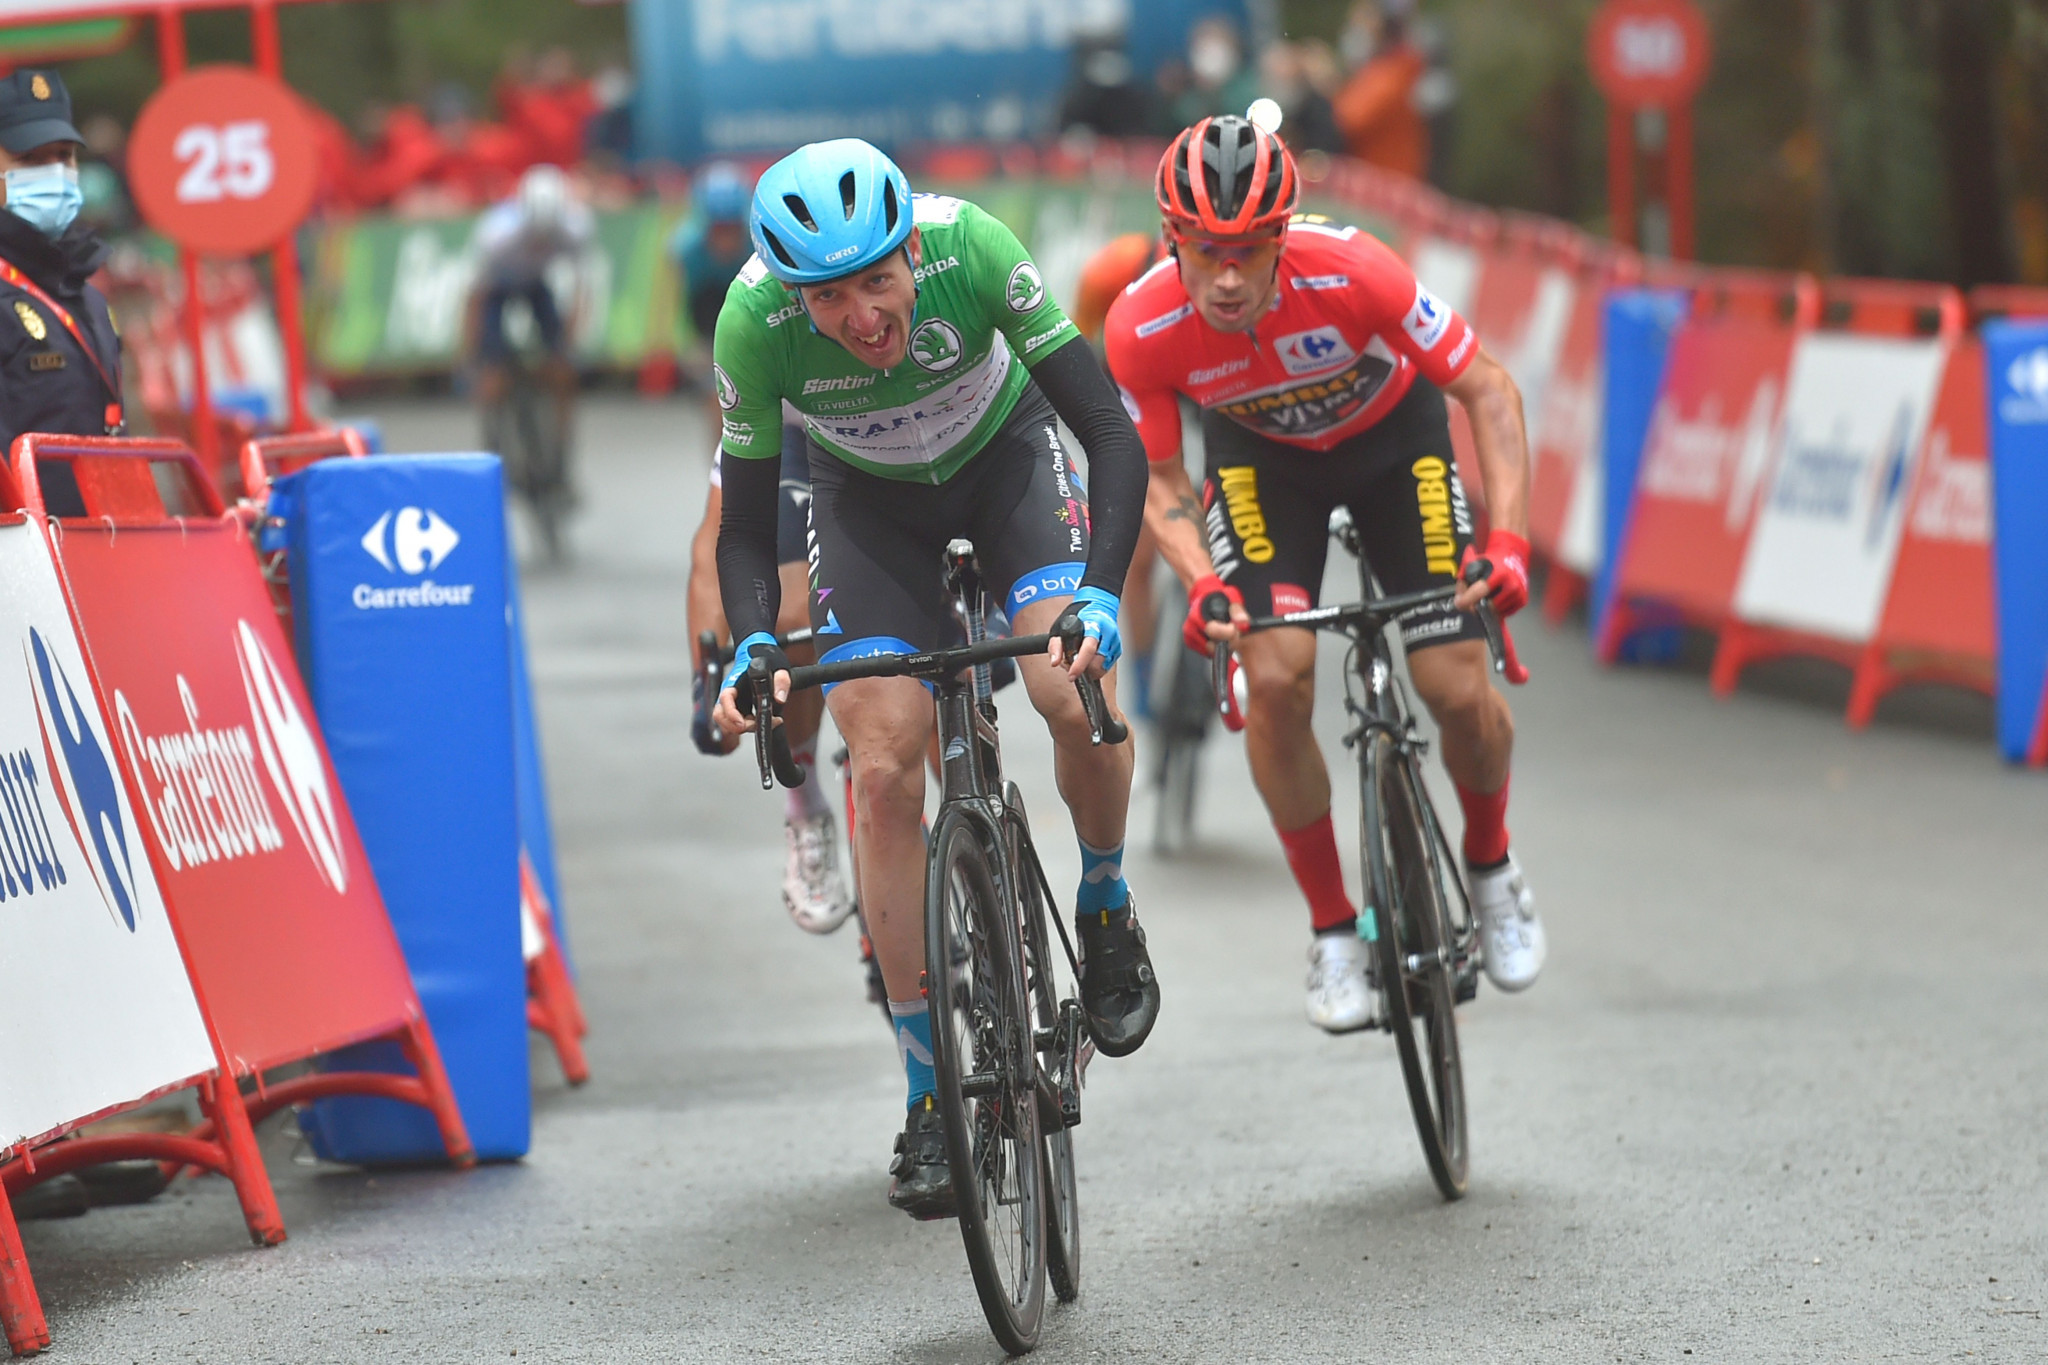 Martin snatches stage victory at Vuelta a España as route adjusted to avoid France